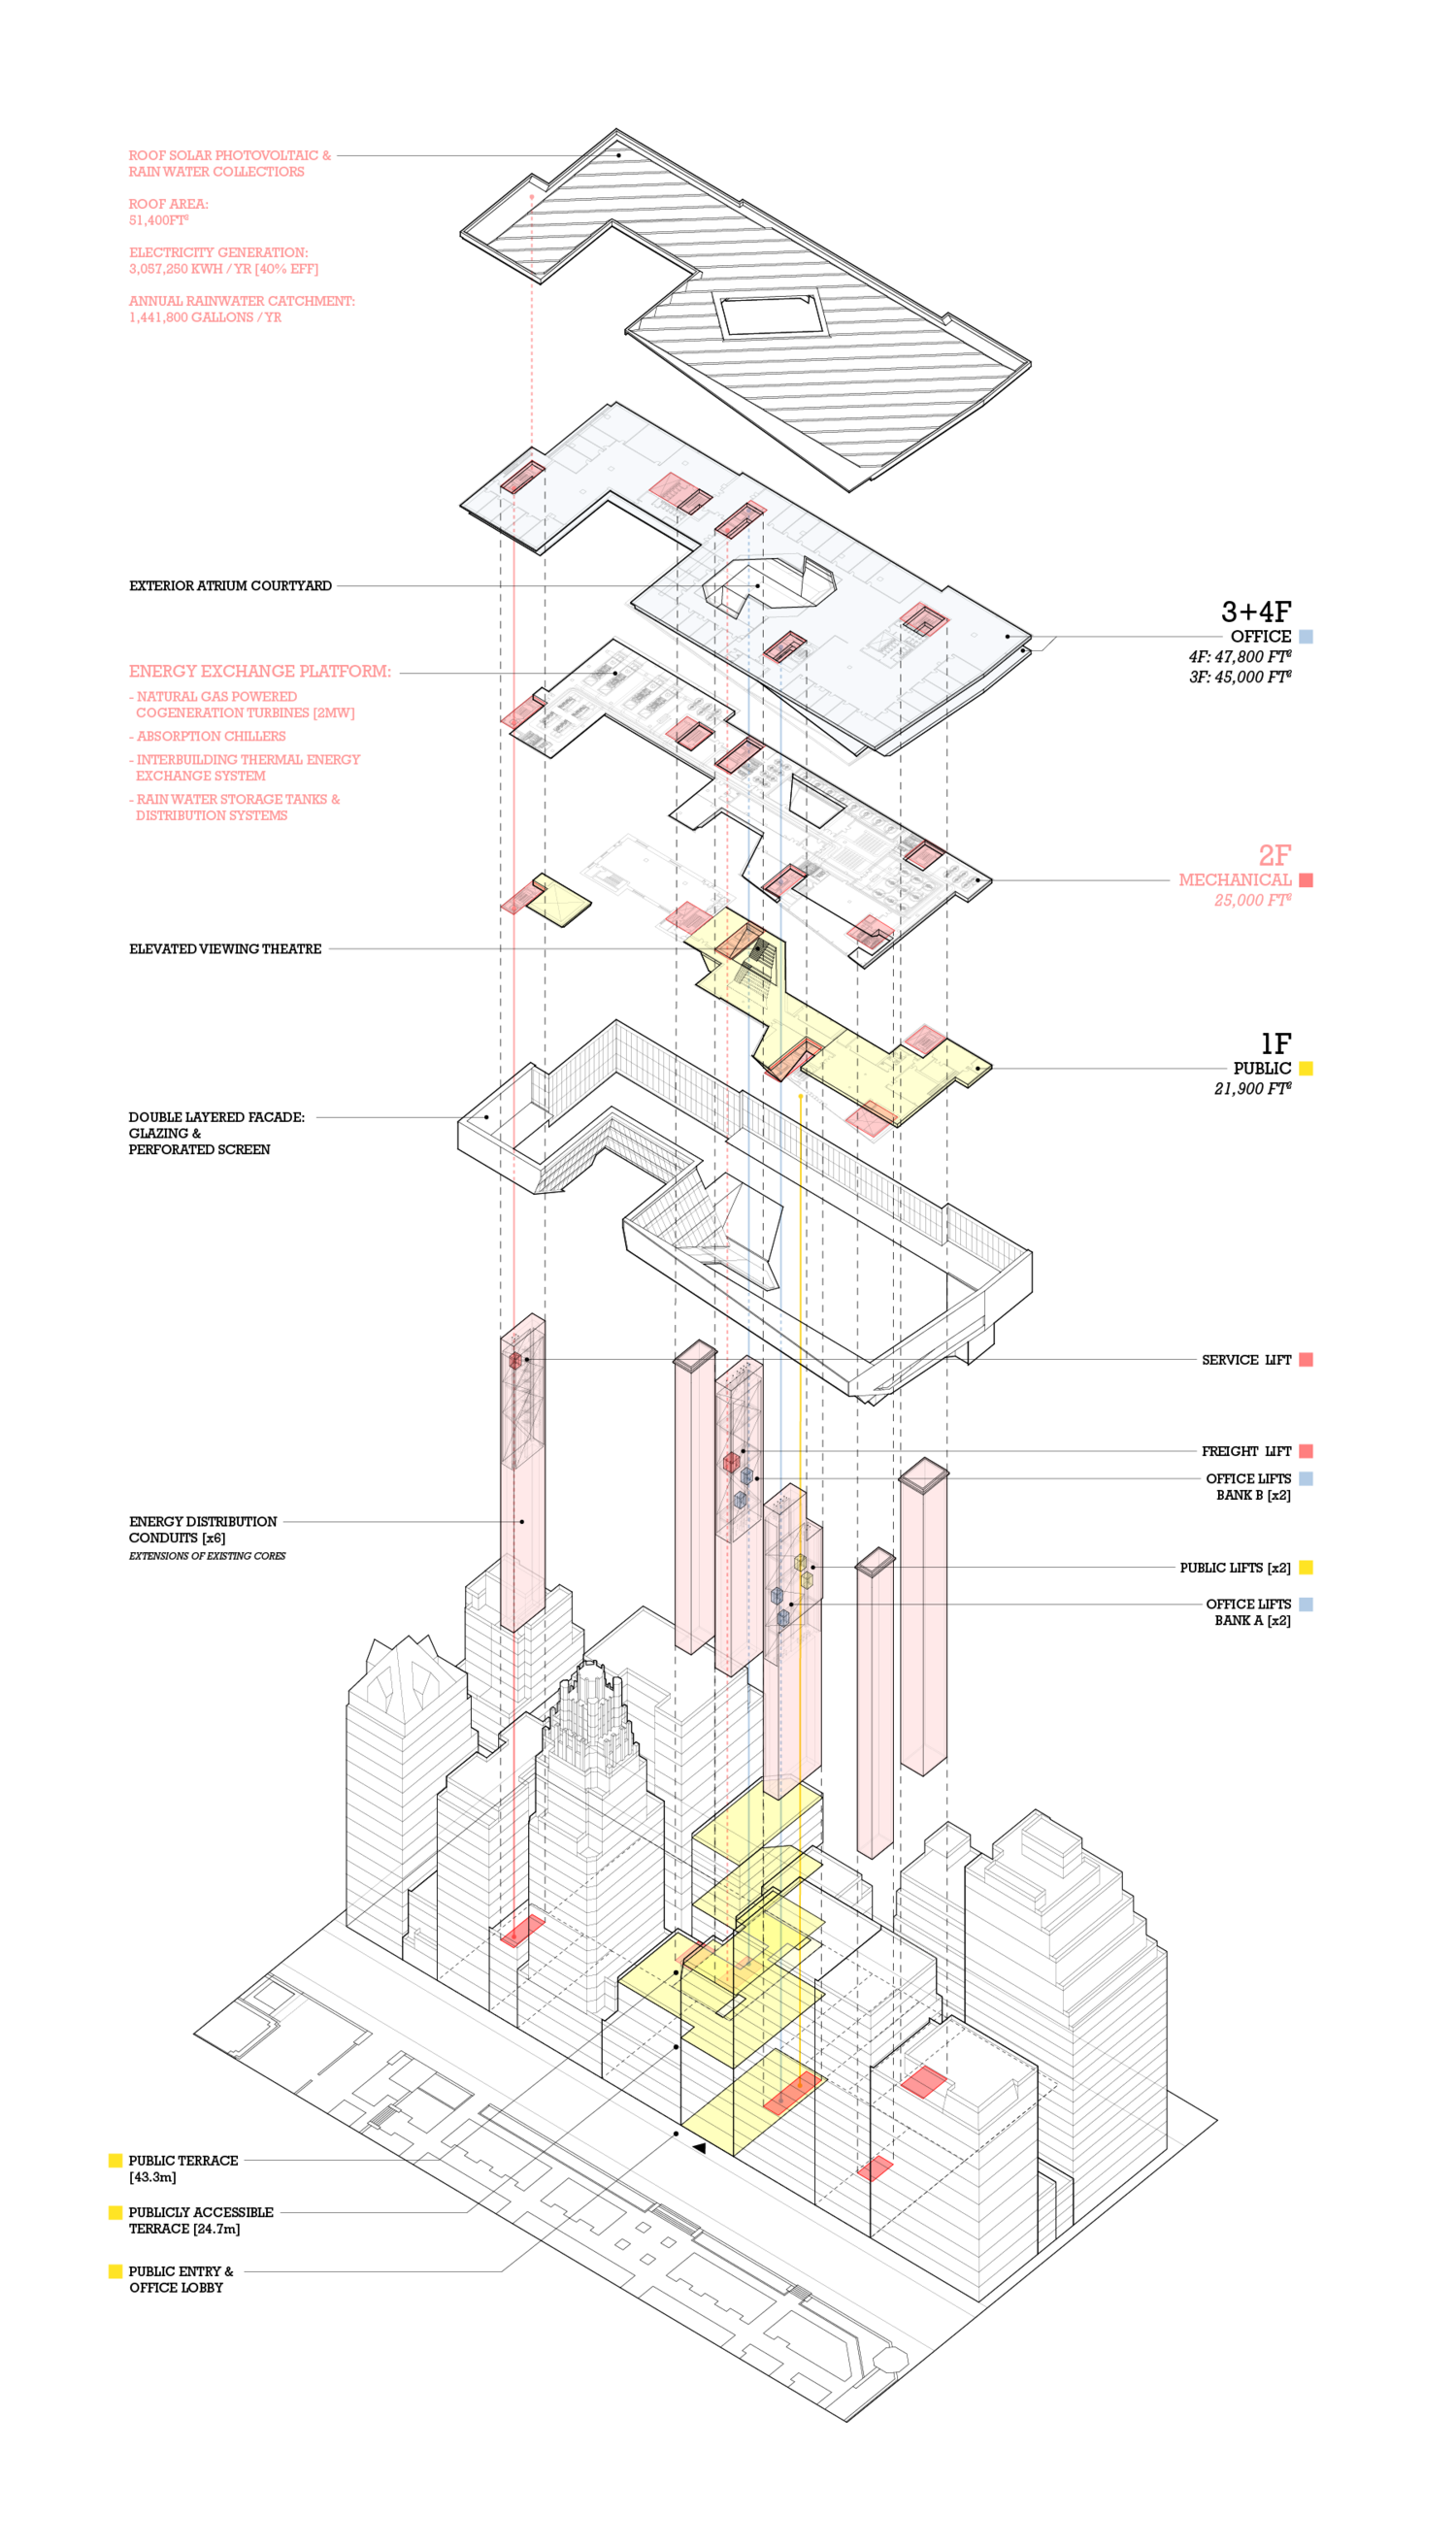 Site drawing axonometric. Building component diagram projects